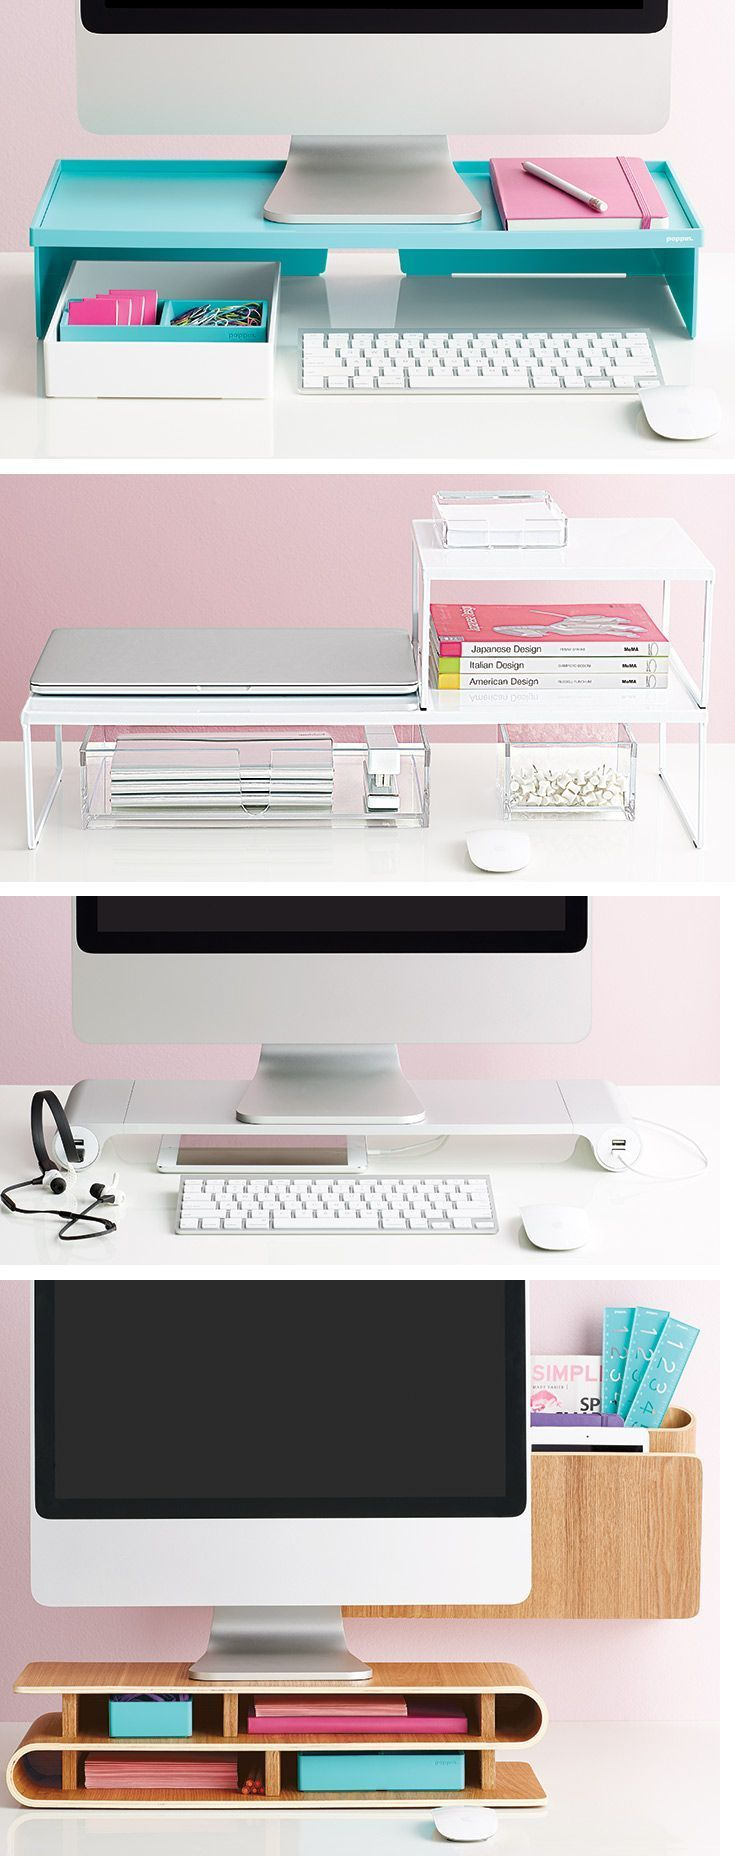 Organize Every Desk Setup With Creative Options From The Container